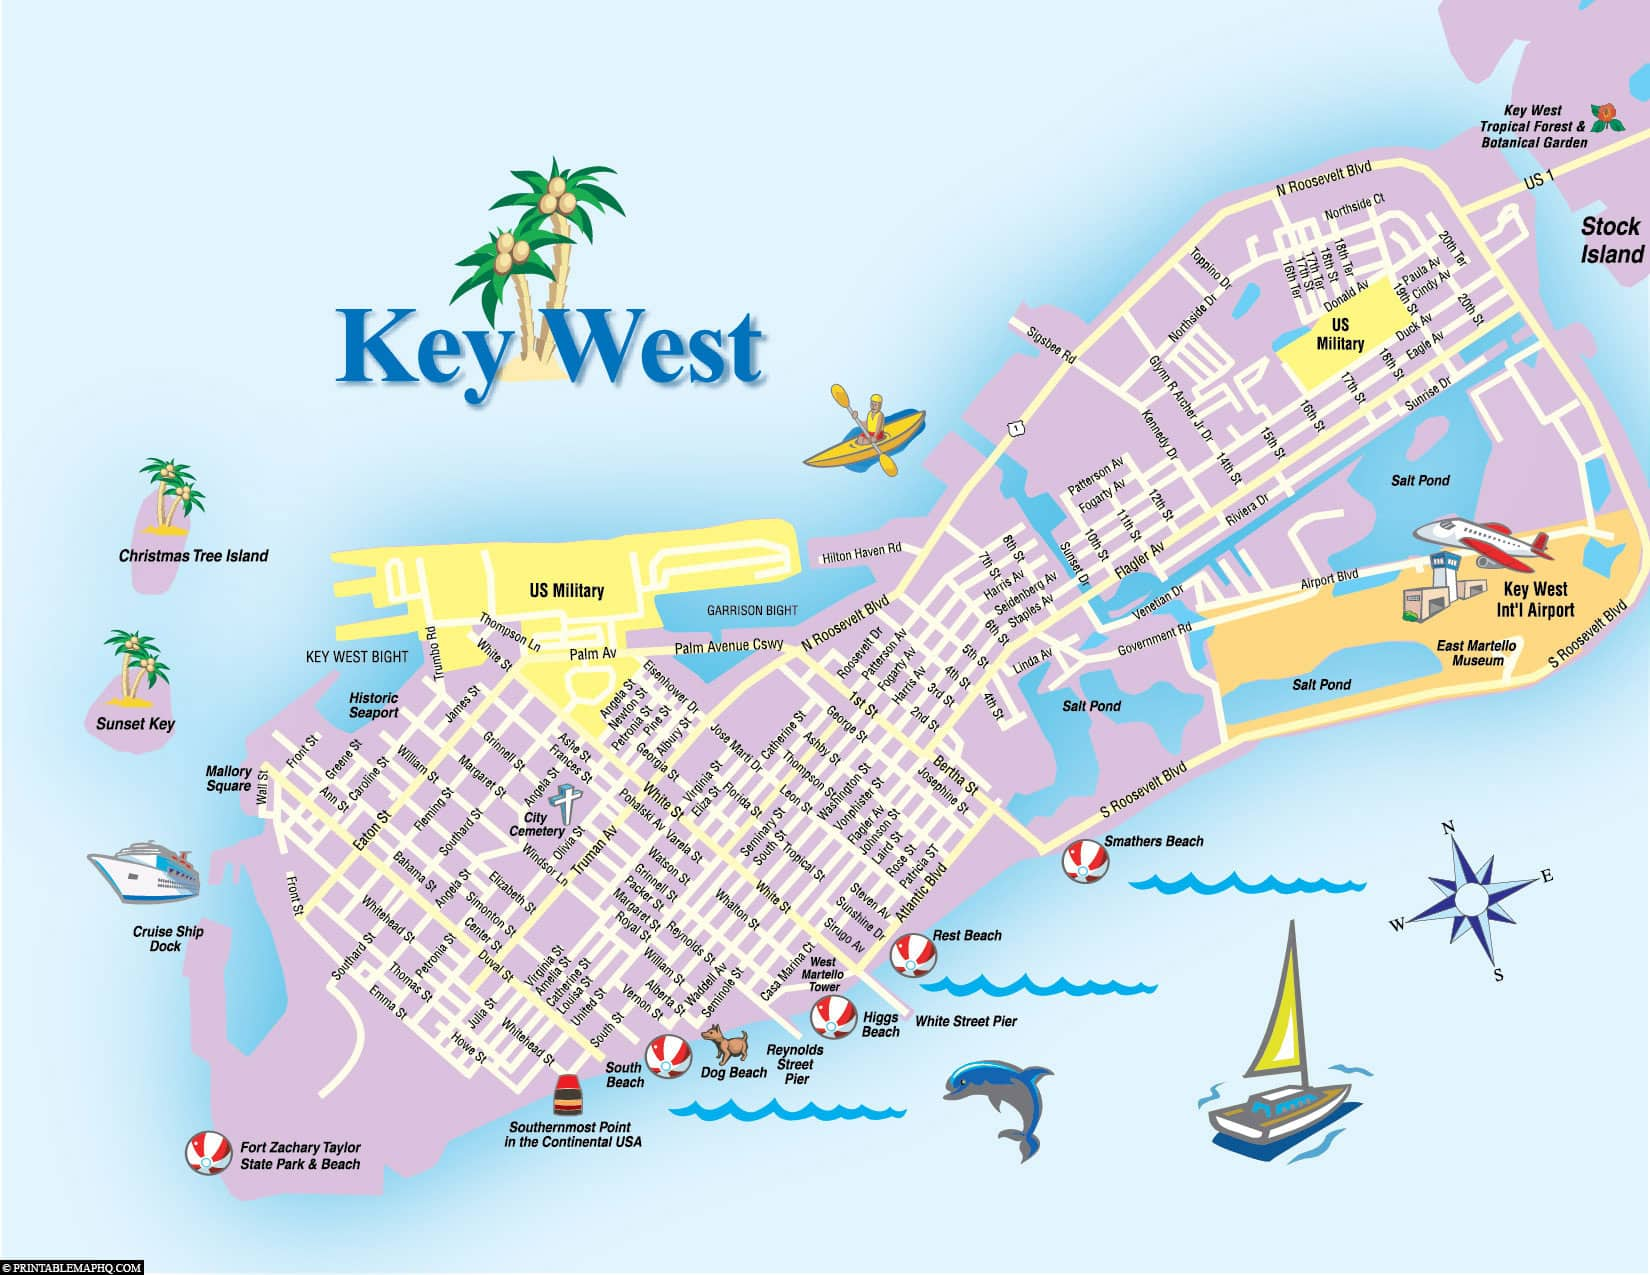 Key West, Map, Florida Keys, Plan, USA, Travelreport